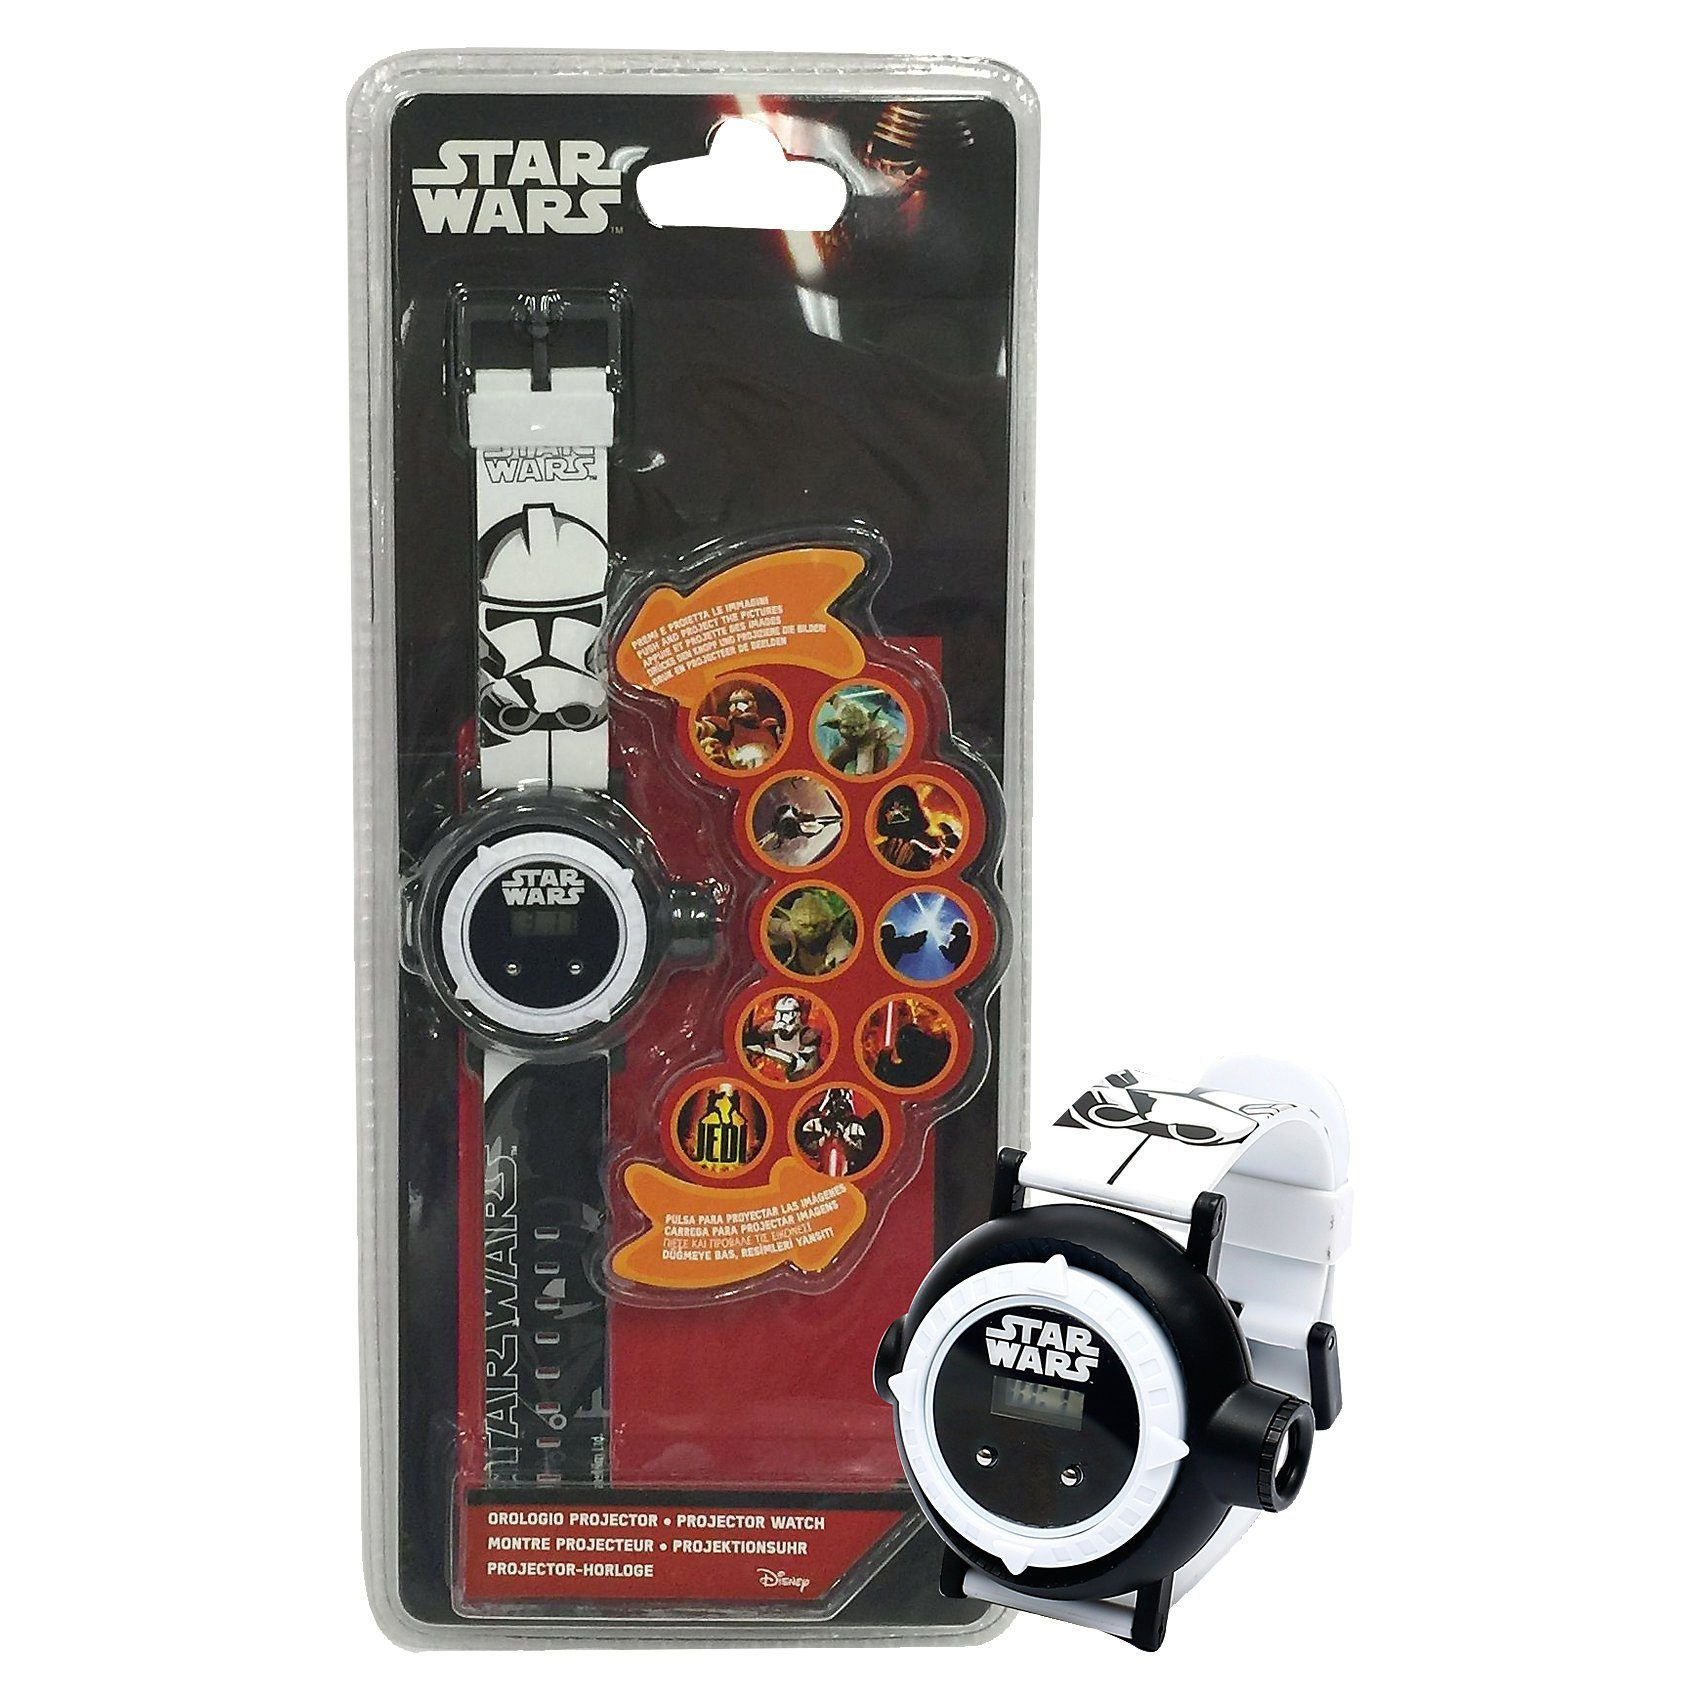 Giochi Preziosi Star Wars Science Watch